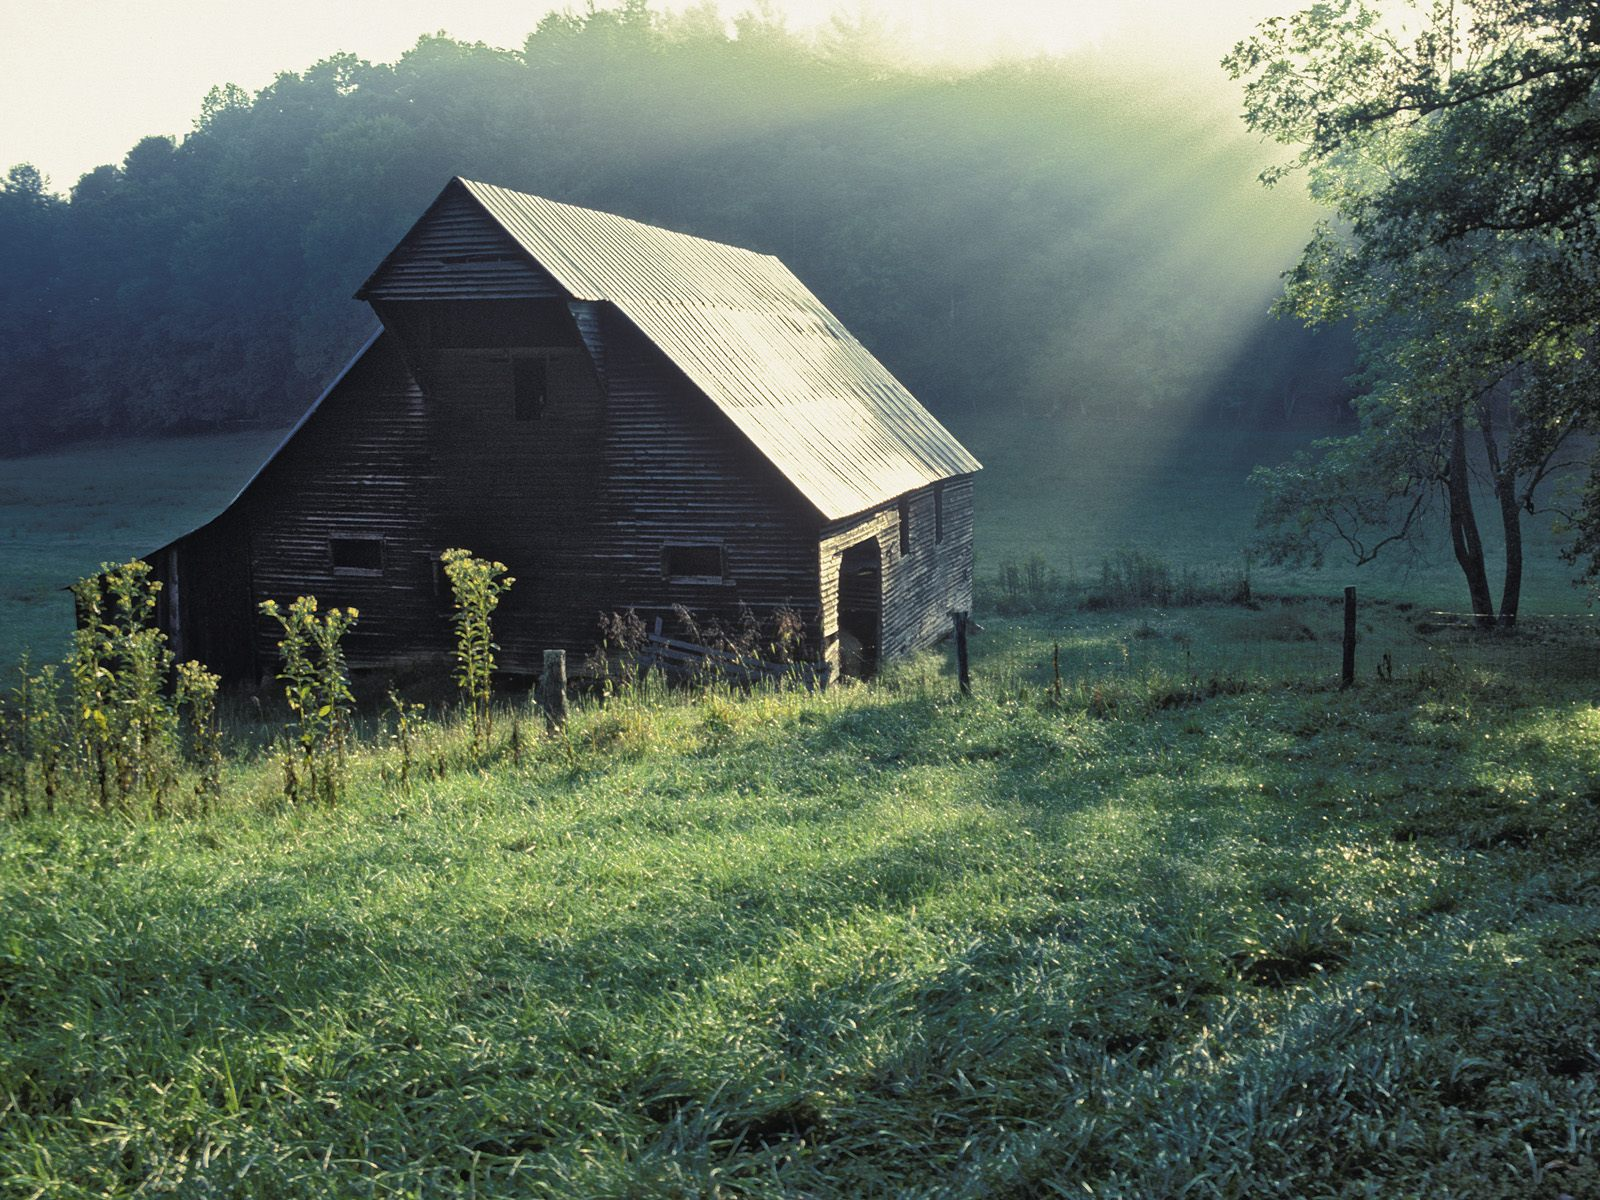 Tennessee Sscenery